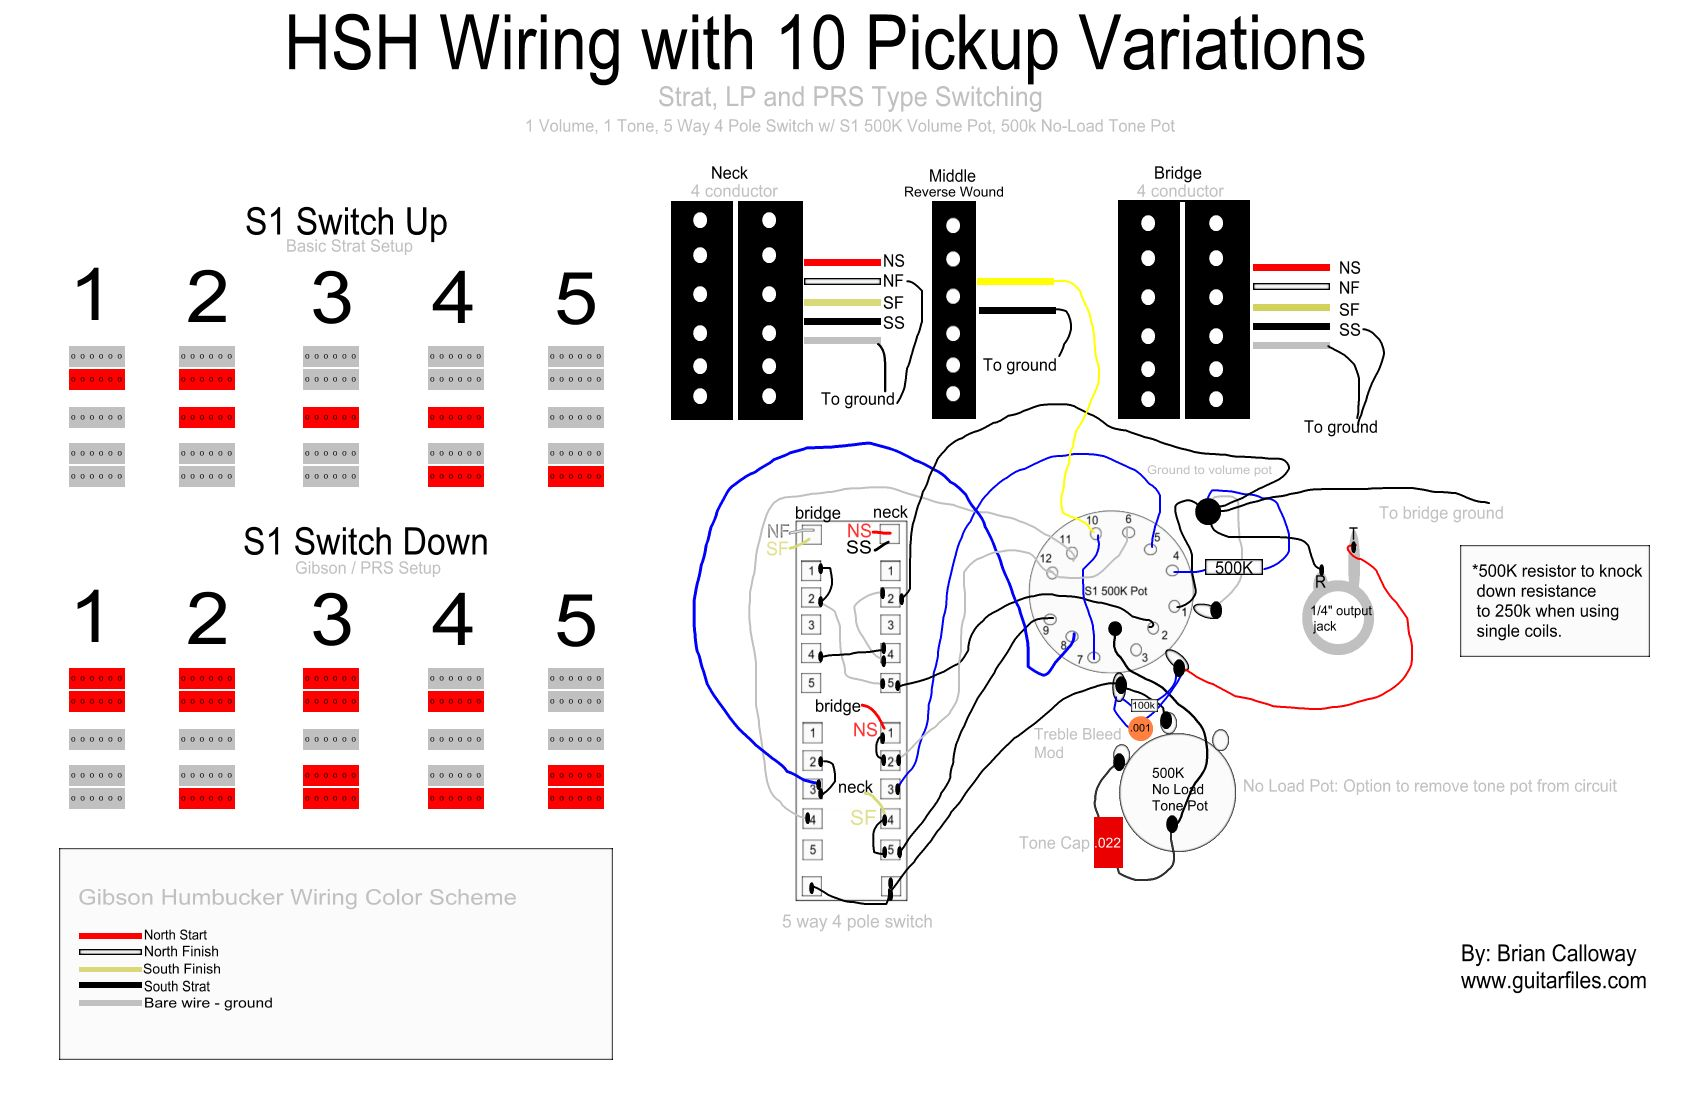 jem wiring diagrams hsh guitar wiring 10 pickup combinations 4 pole switch and s1  hsh guitar wiring 10 pickup